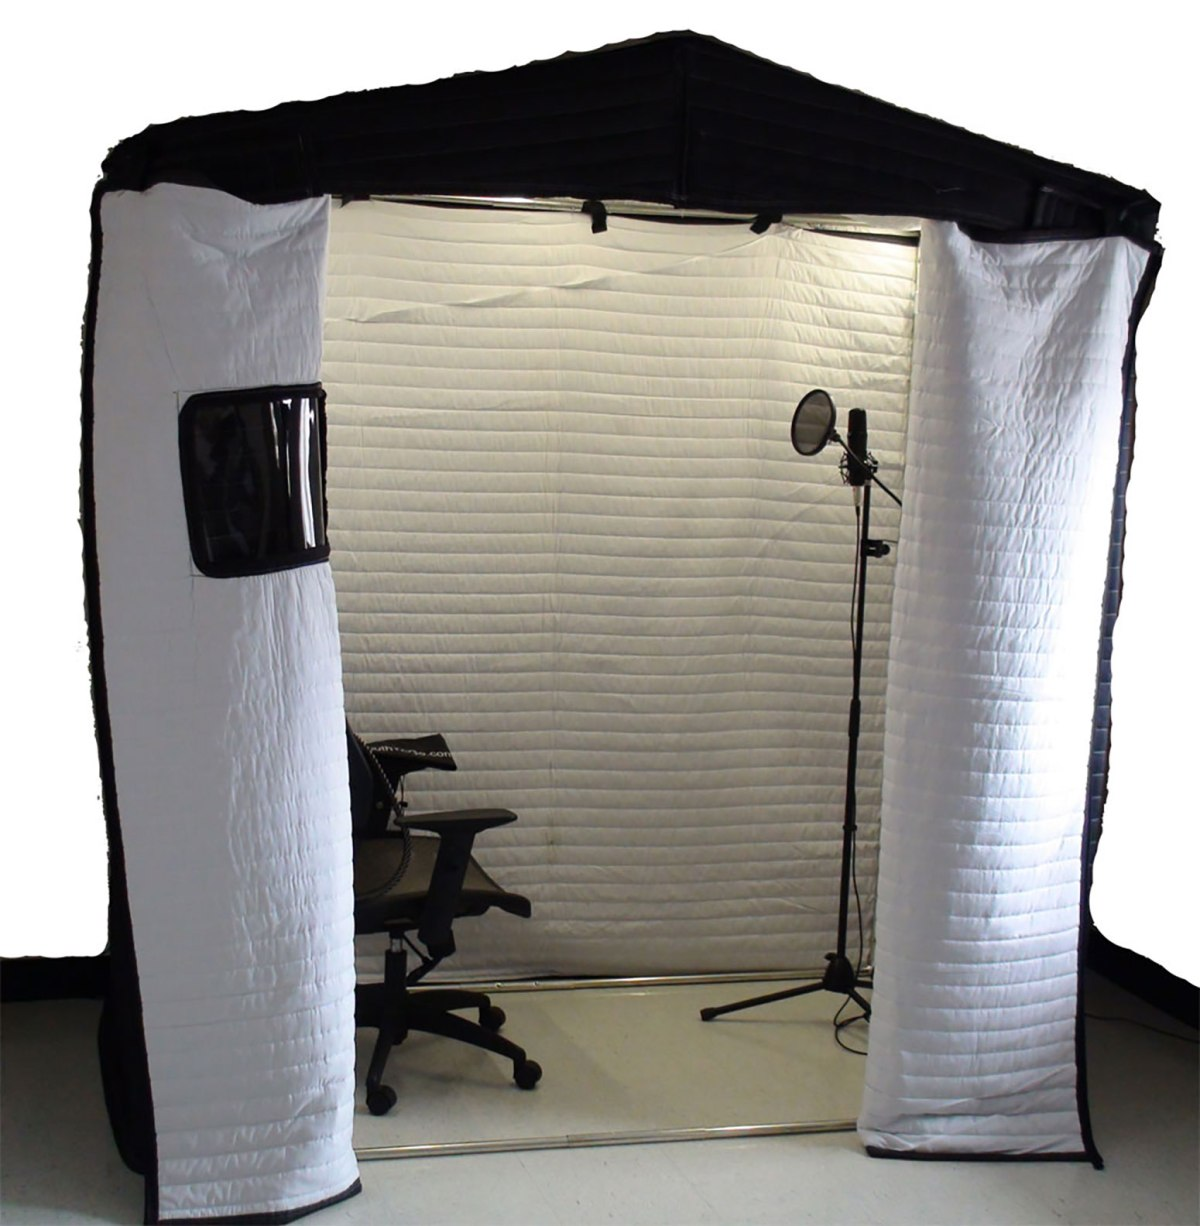 How to build a Mobile Acoustic Vocal booth on abudget